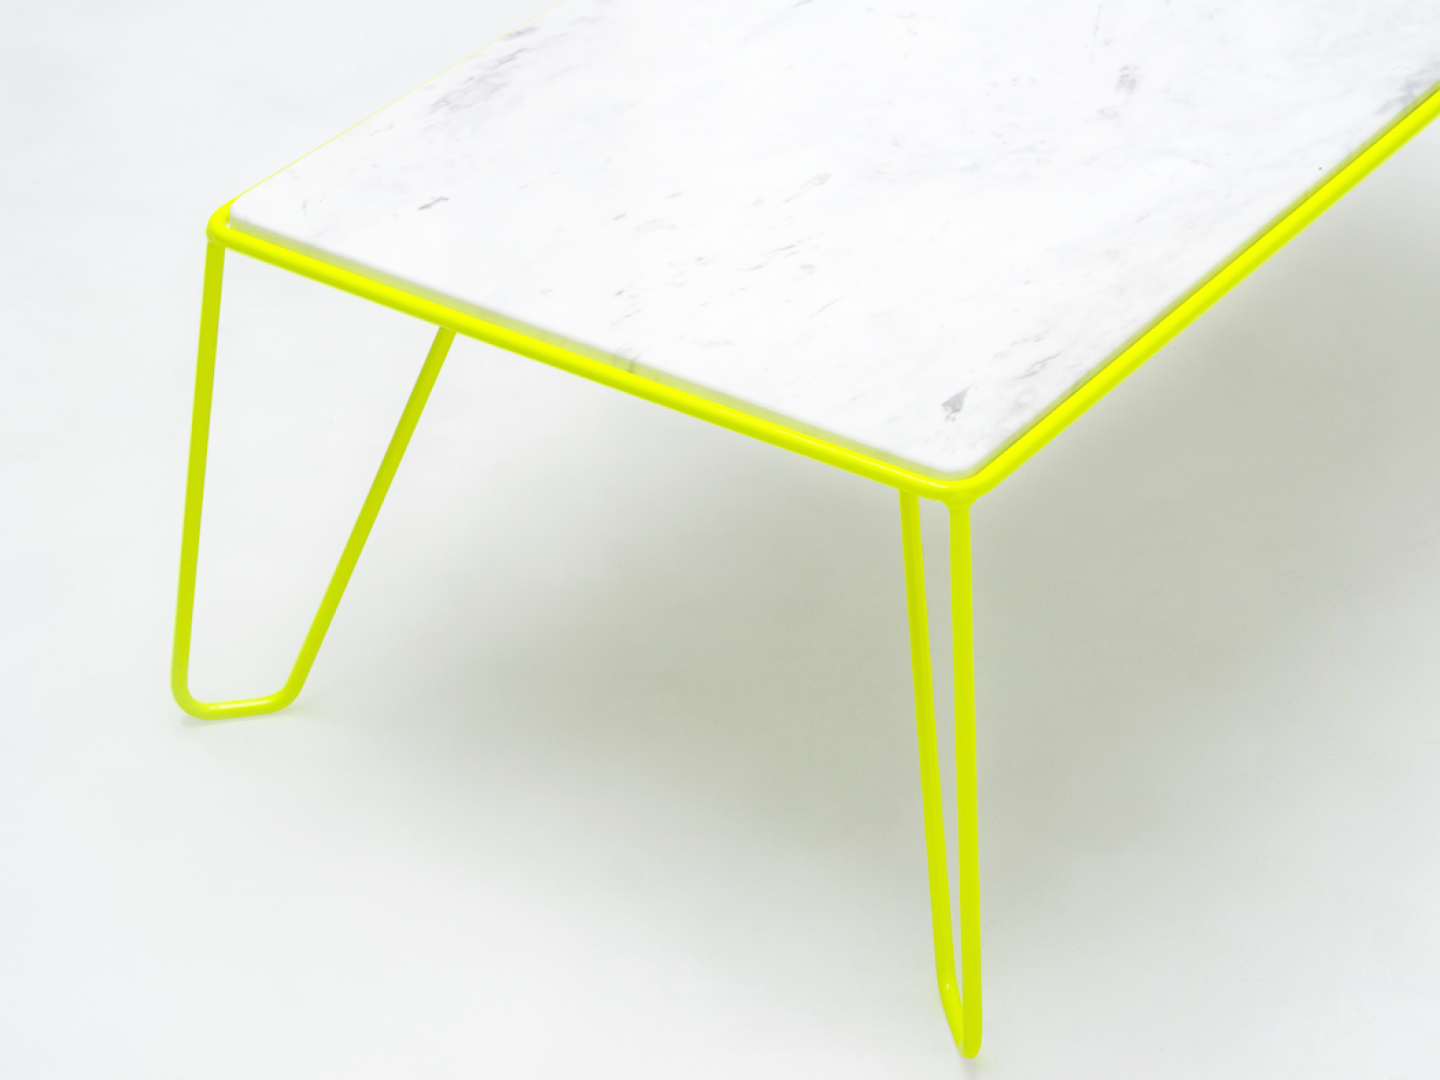 objekte-unserer-tage-08-studio-23-yilmaz-Coffee-table-(high-res)